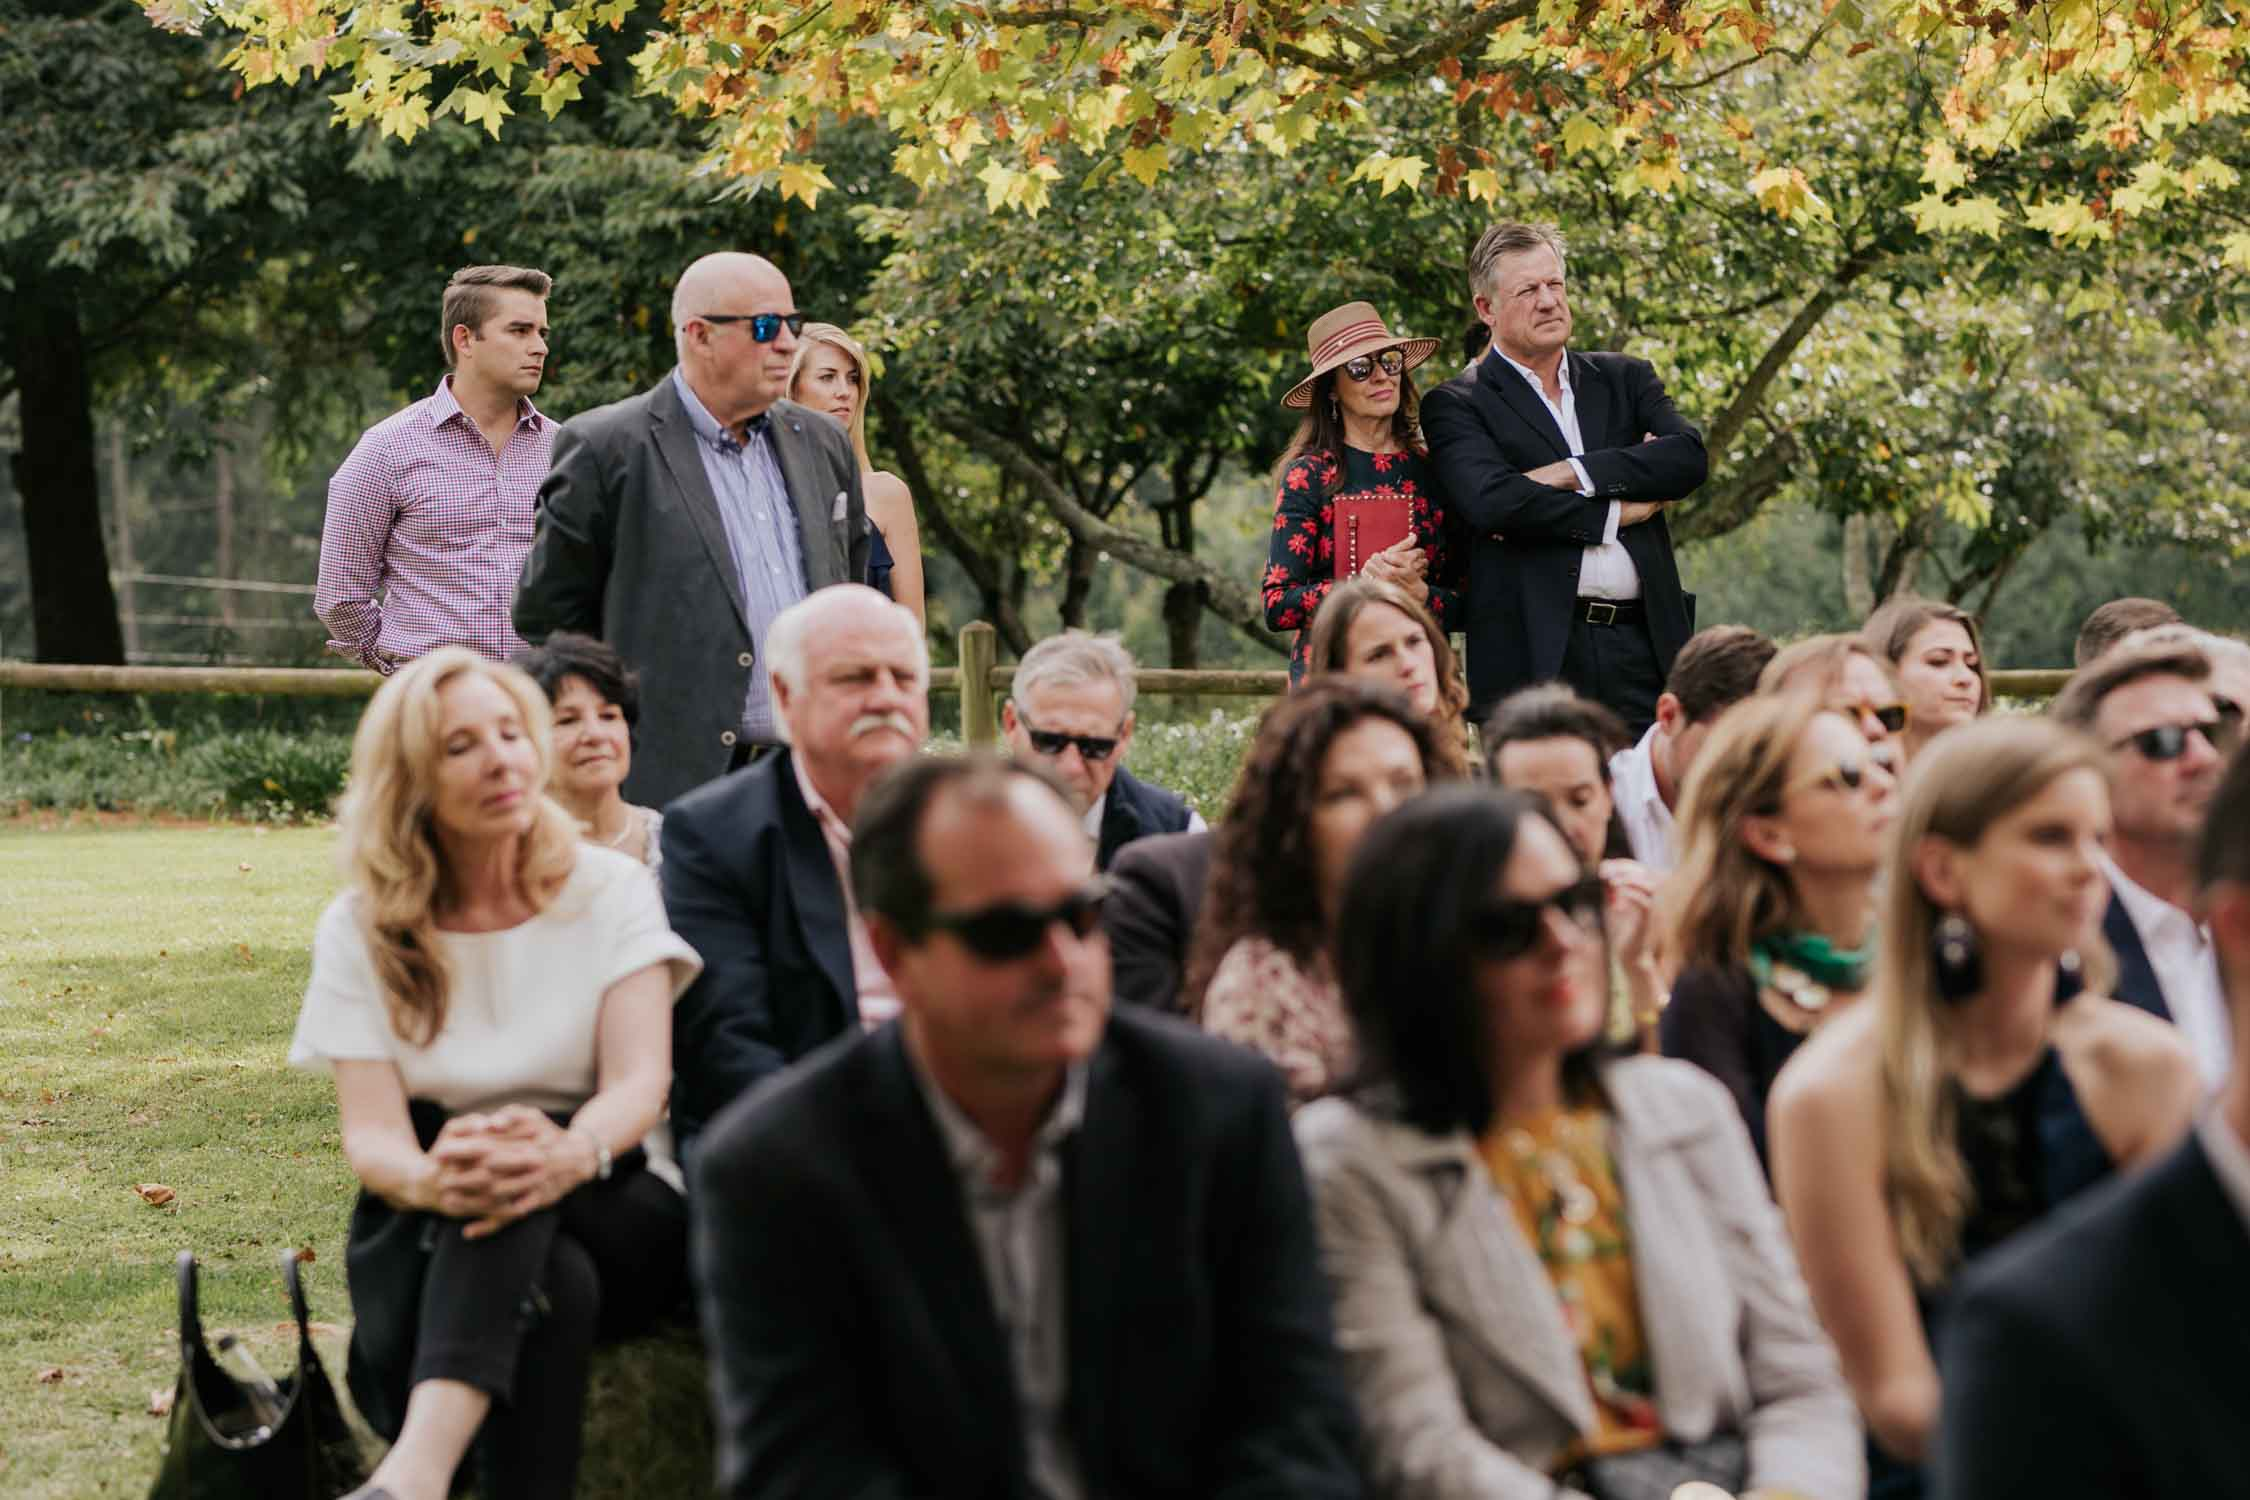 Guests watching bride and groom get married under Autumn trees during wedding ceremony on a farm